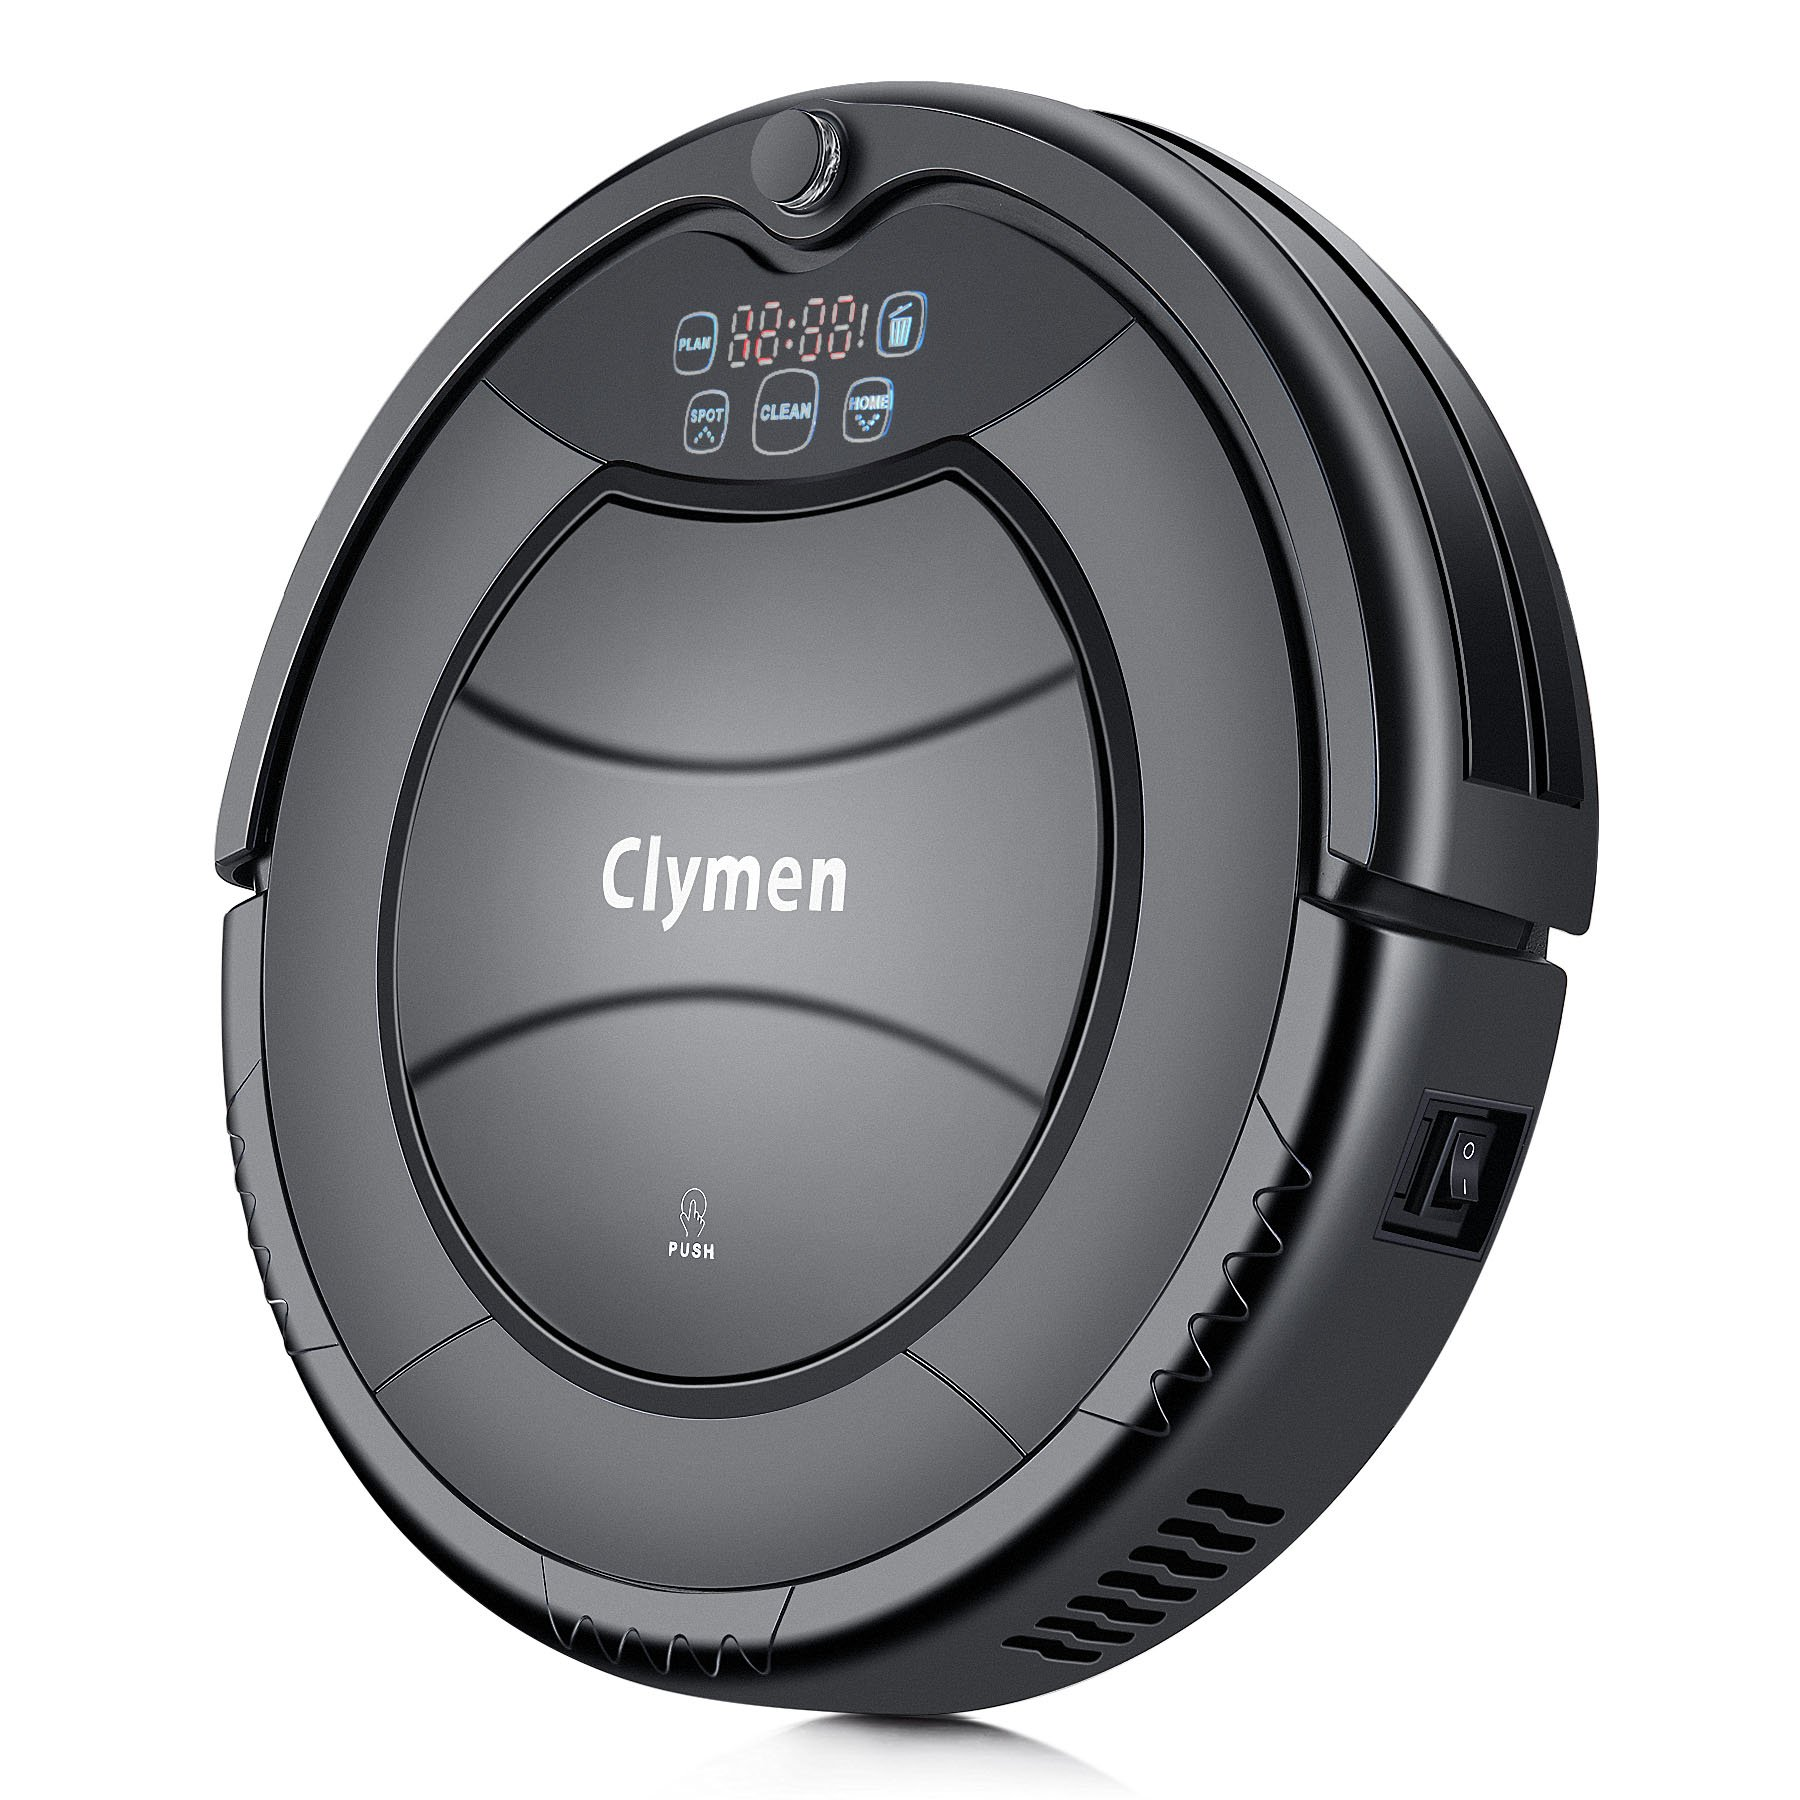 Clymen Q7 Robot Vacuum Cleaner, Self-Charging Robotic Vacuum,Suitable for Tiles and Hard Floors, Quiet, Powerful Suction on Thin Carpet